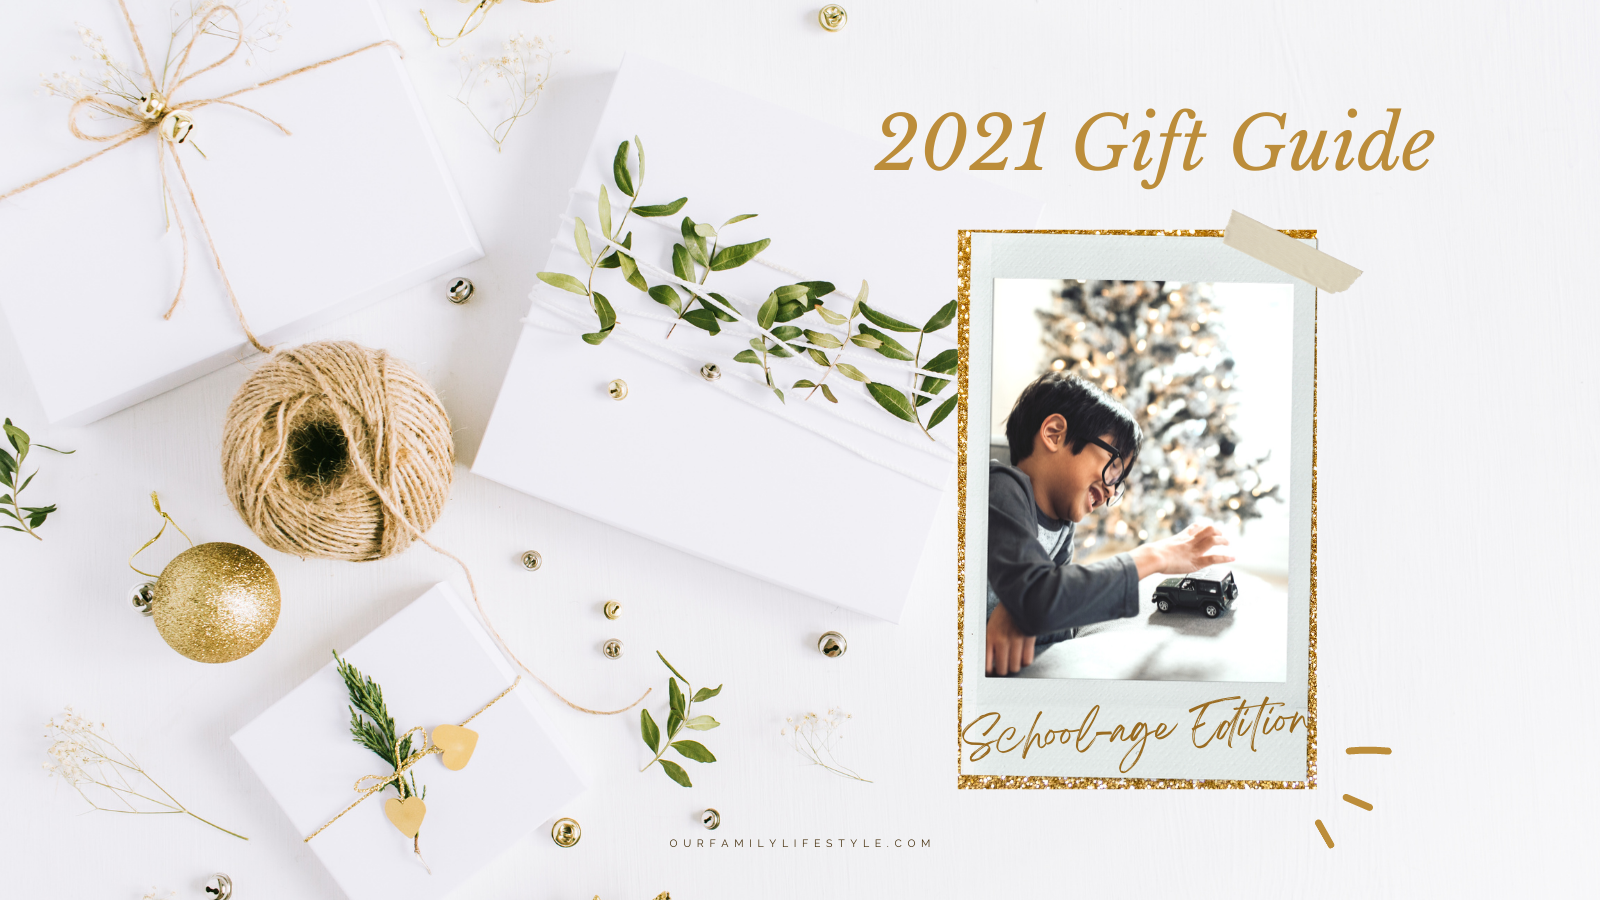 2021 Holiday Gift Guide: Great Gifts for School-Aged Kids